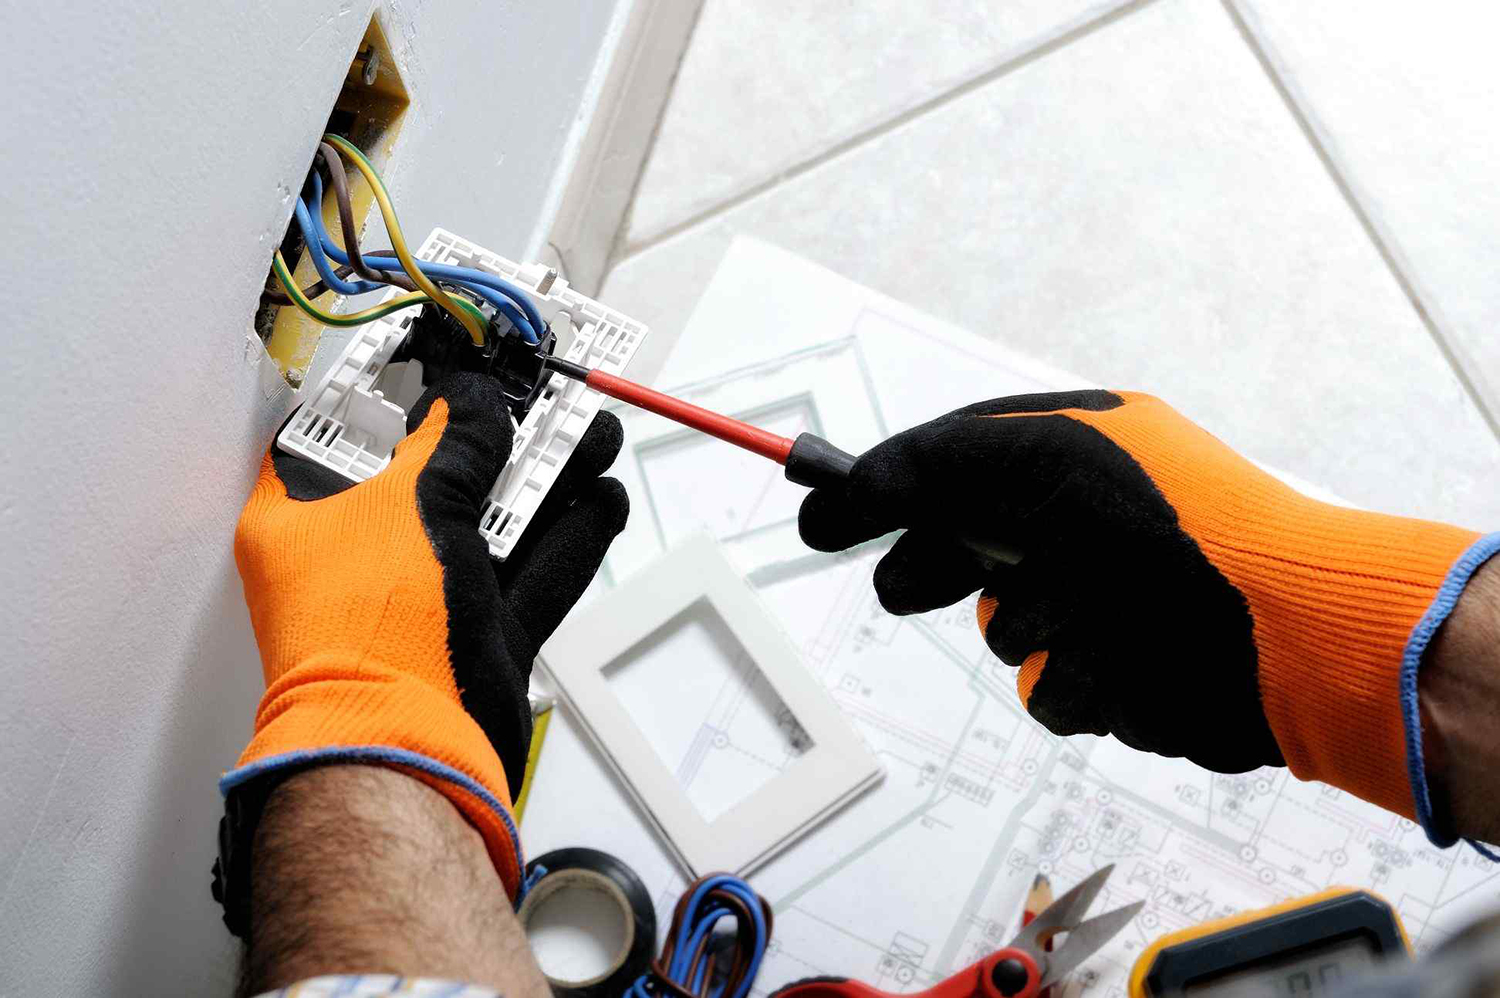 residential electricians Electrical Repair Service Herndon VA